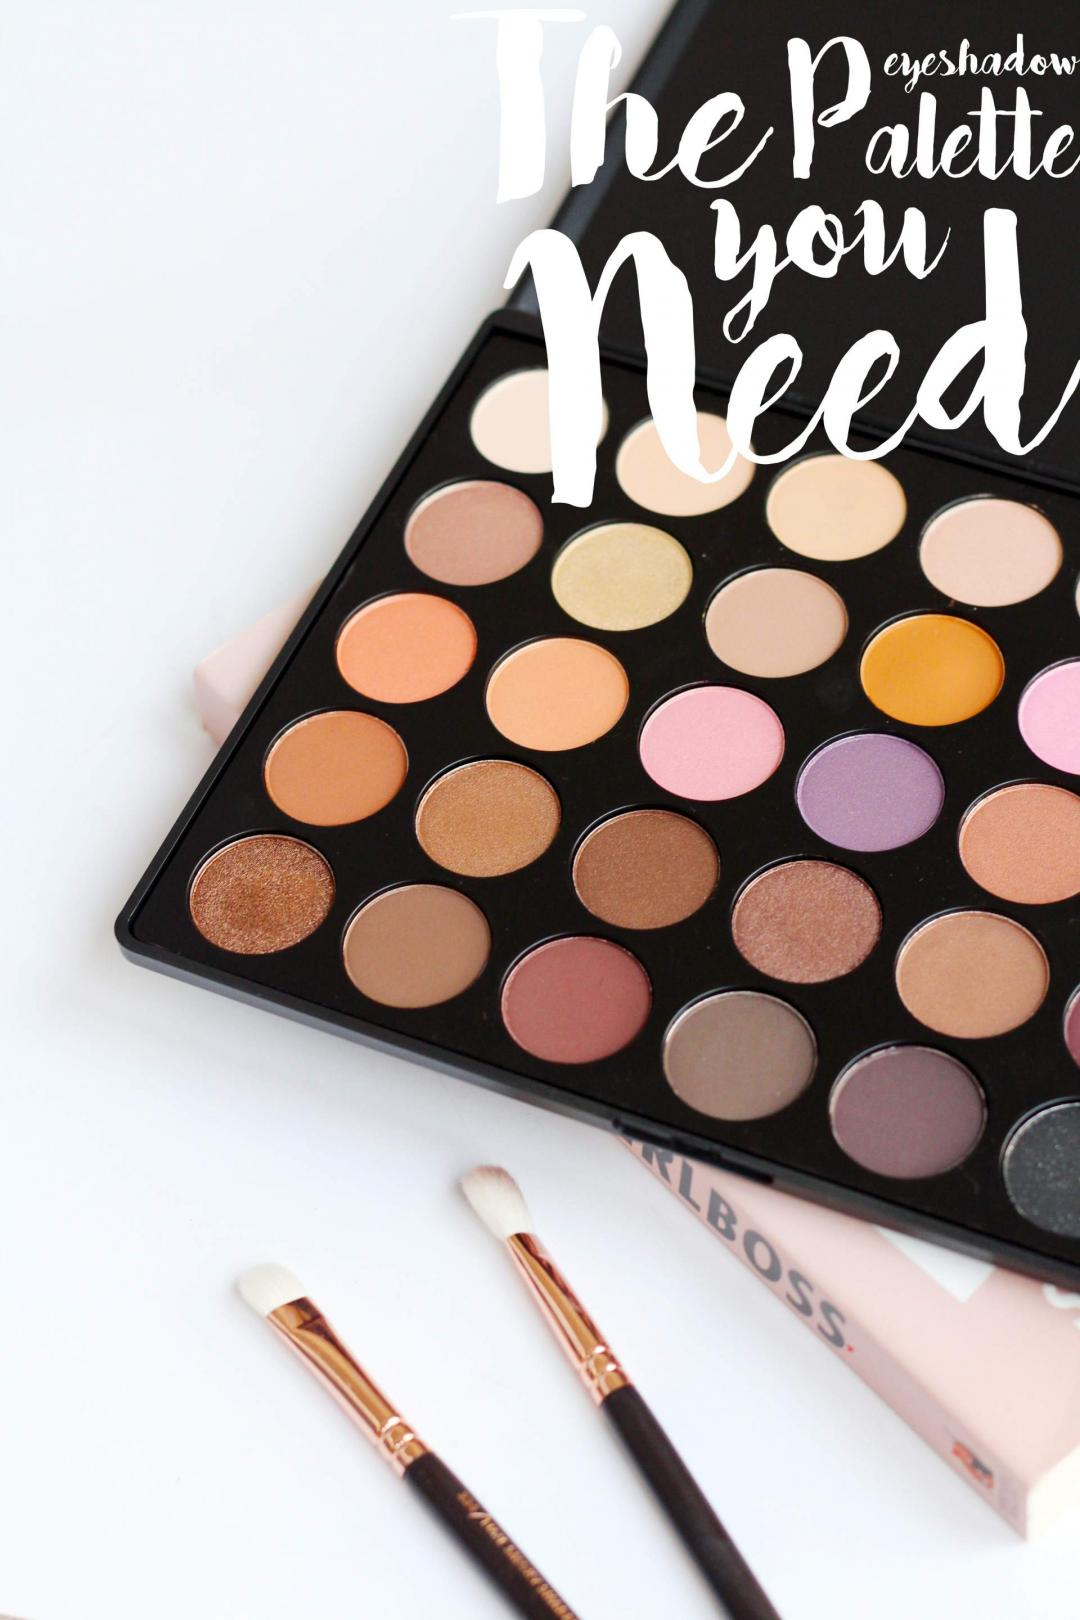 morphe--eyeshadow-palette-review-eyeshadow-cheap-brushes-nude-warm